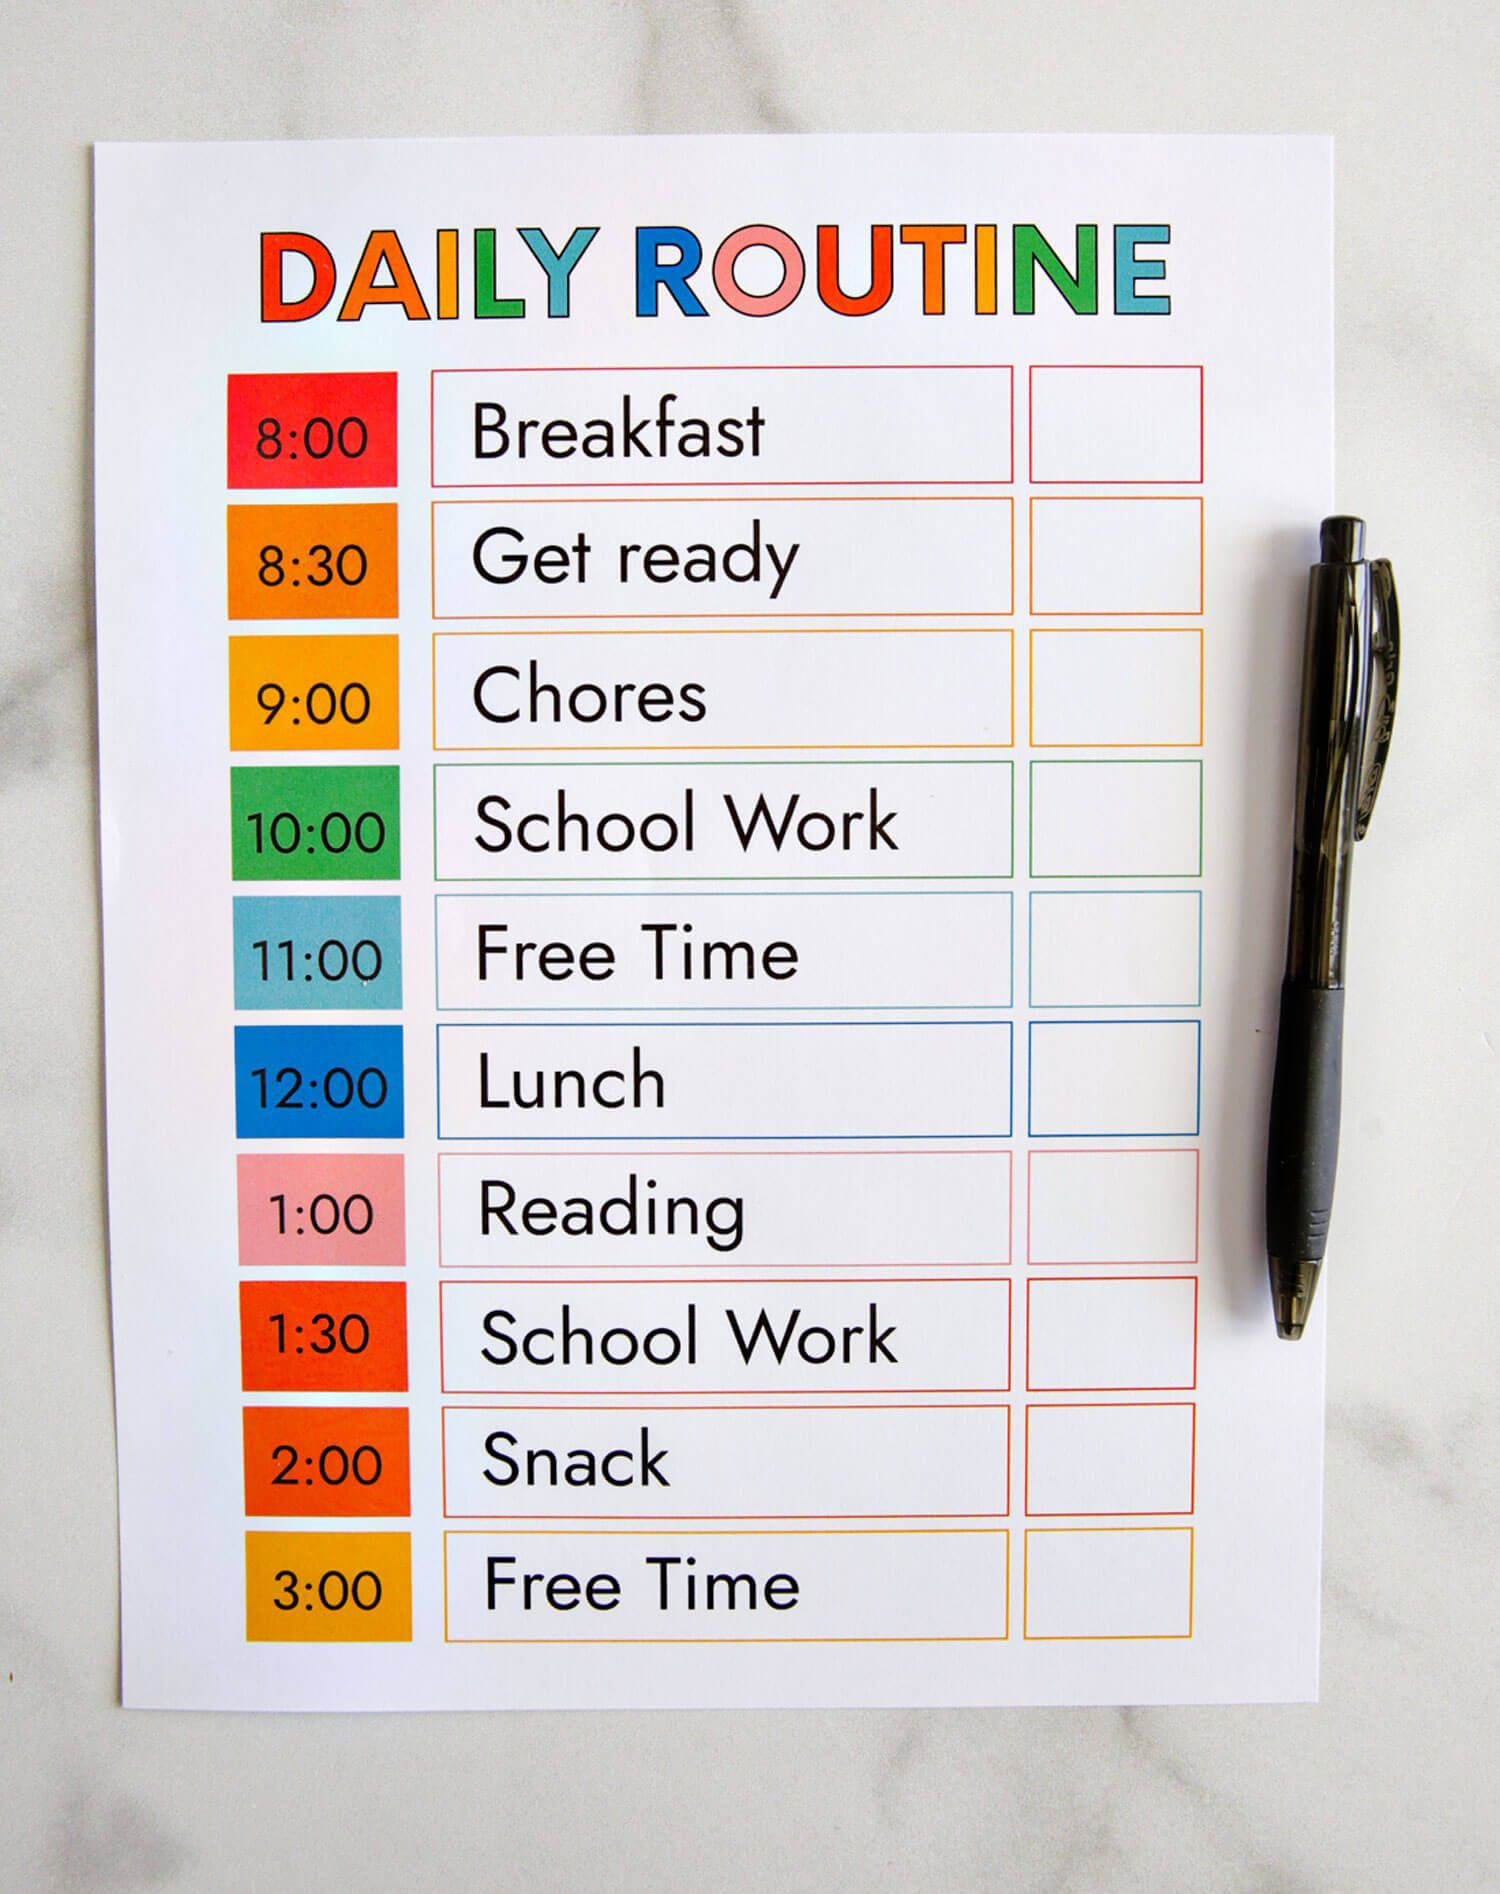 008 Shocking Daily Schedule Template Printable Image Full